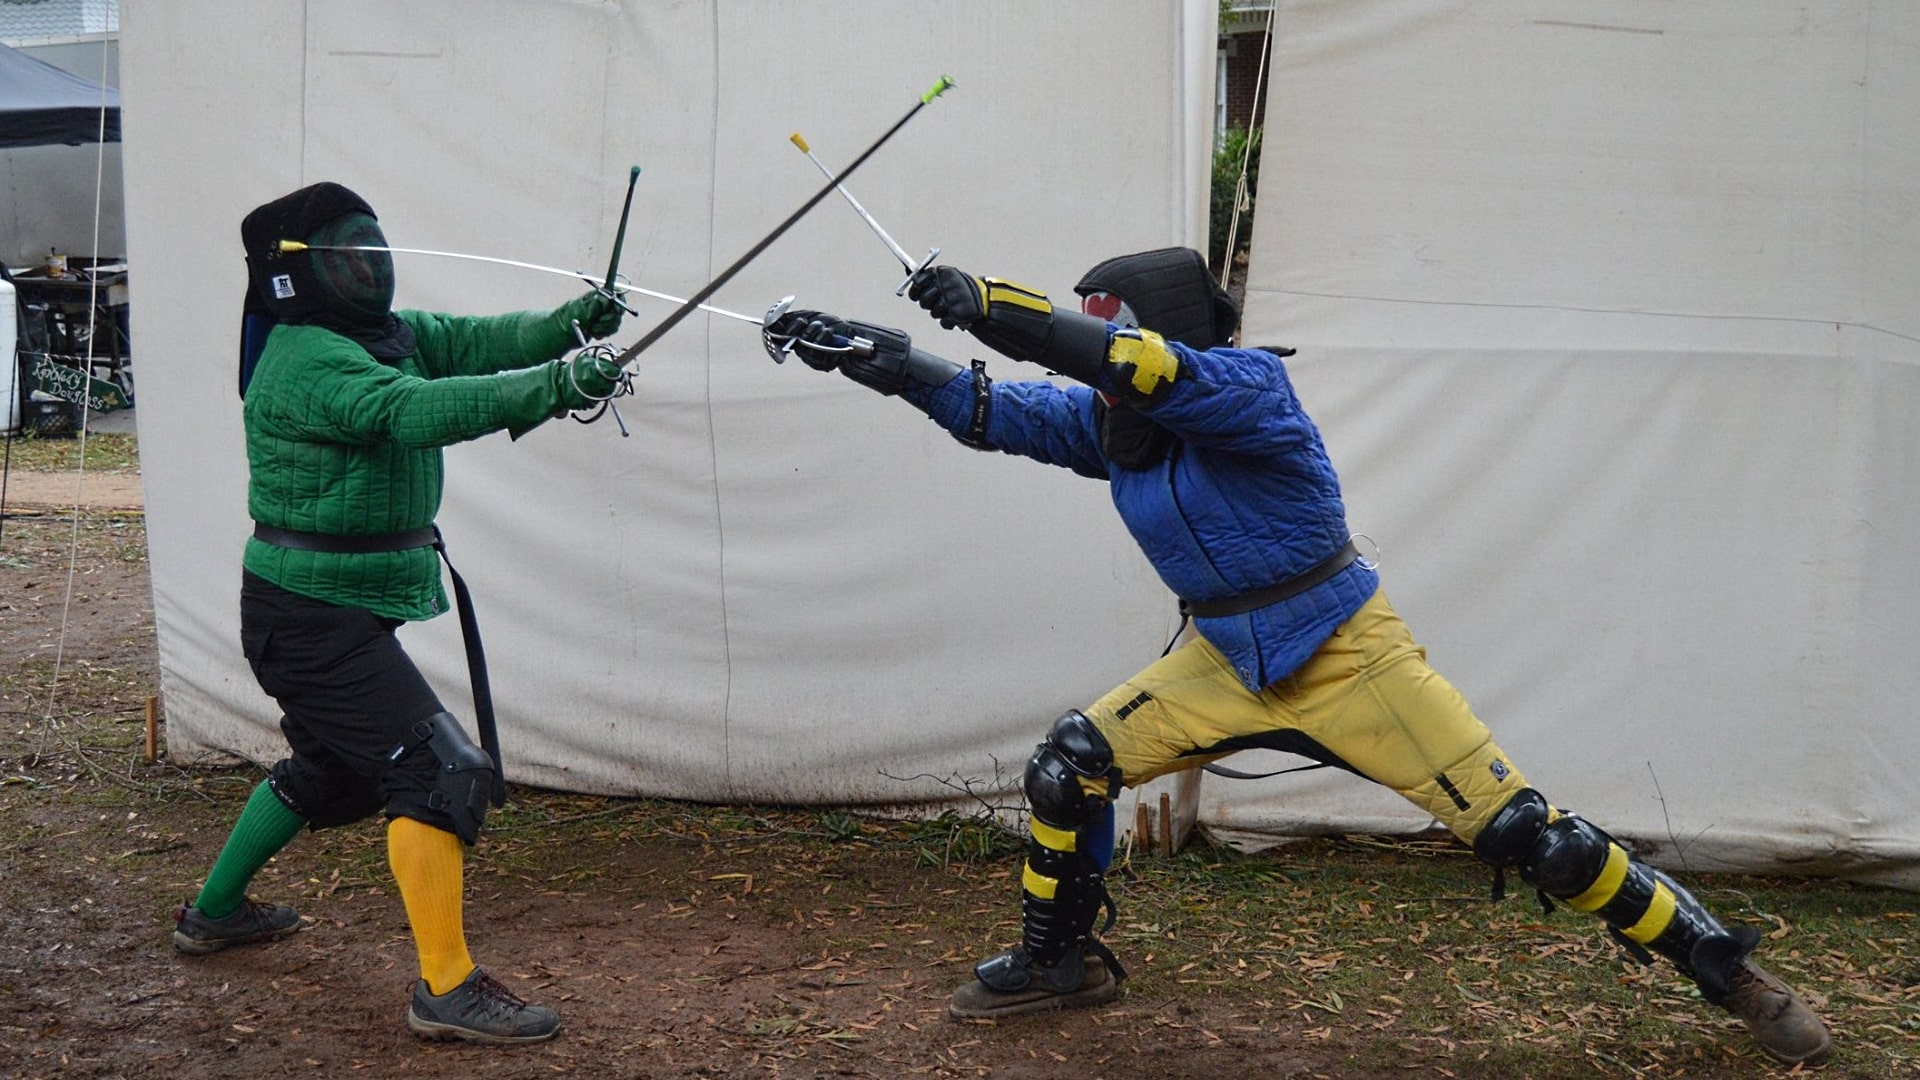 IMAGE: Demonstrating rapier at a faire